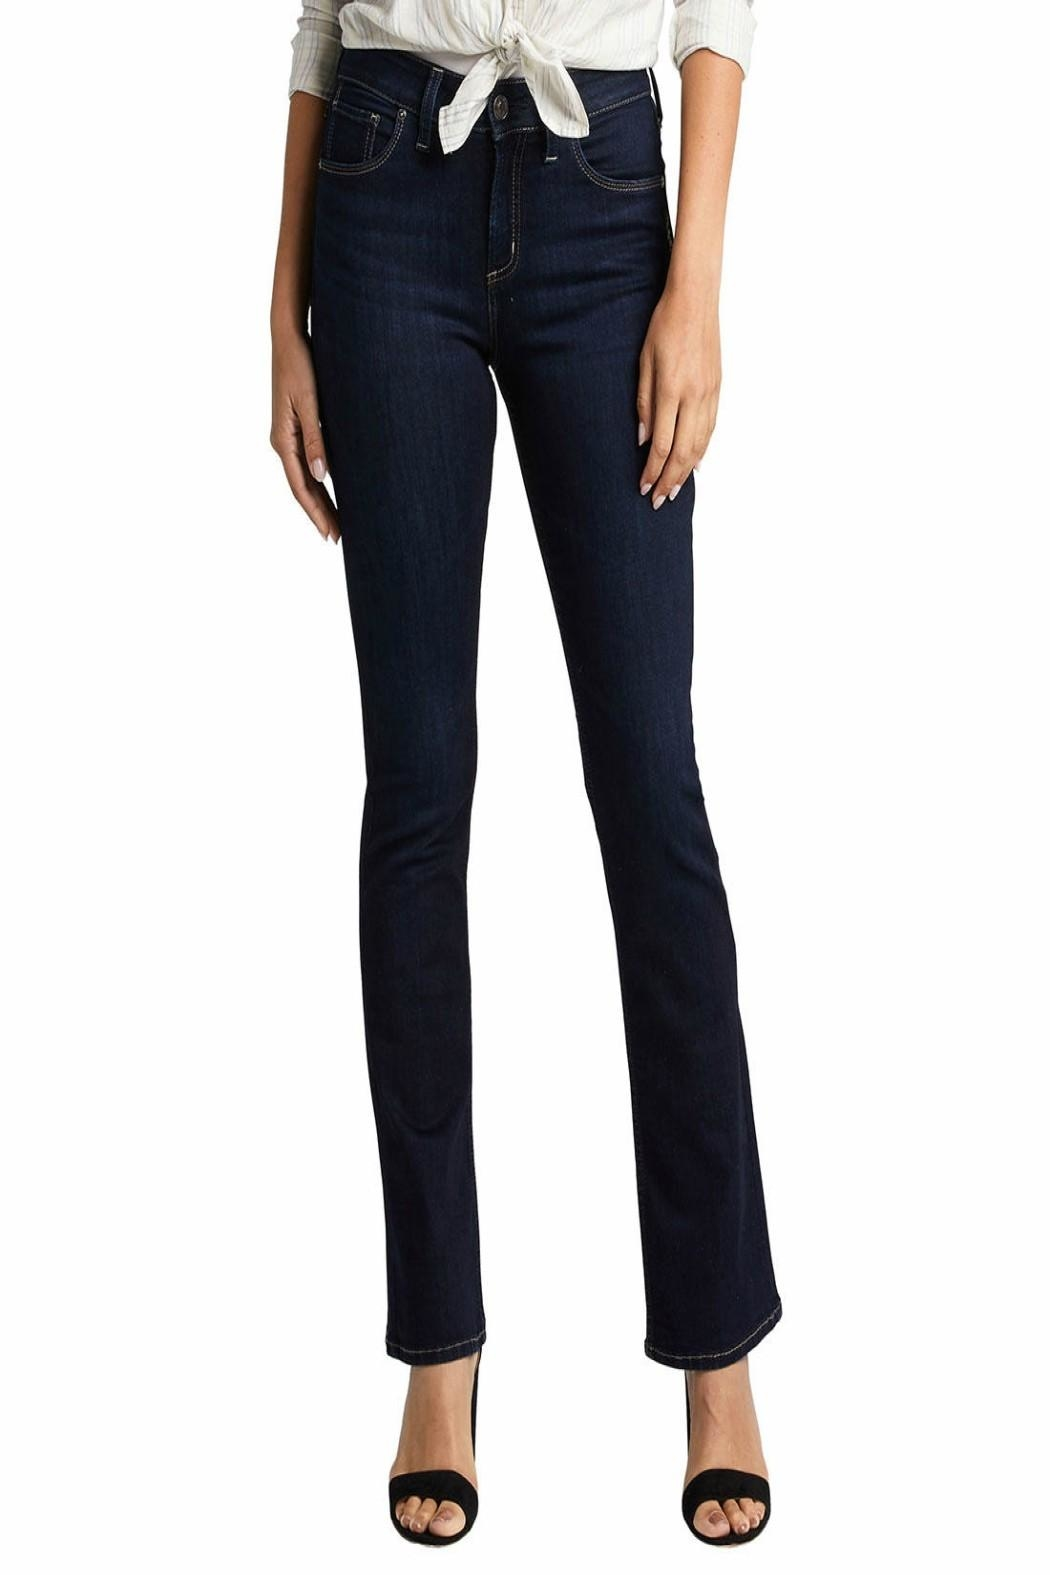 Silver Jeans Co. Avery-Slim High-Rise Jeans - Main Image